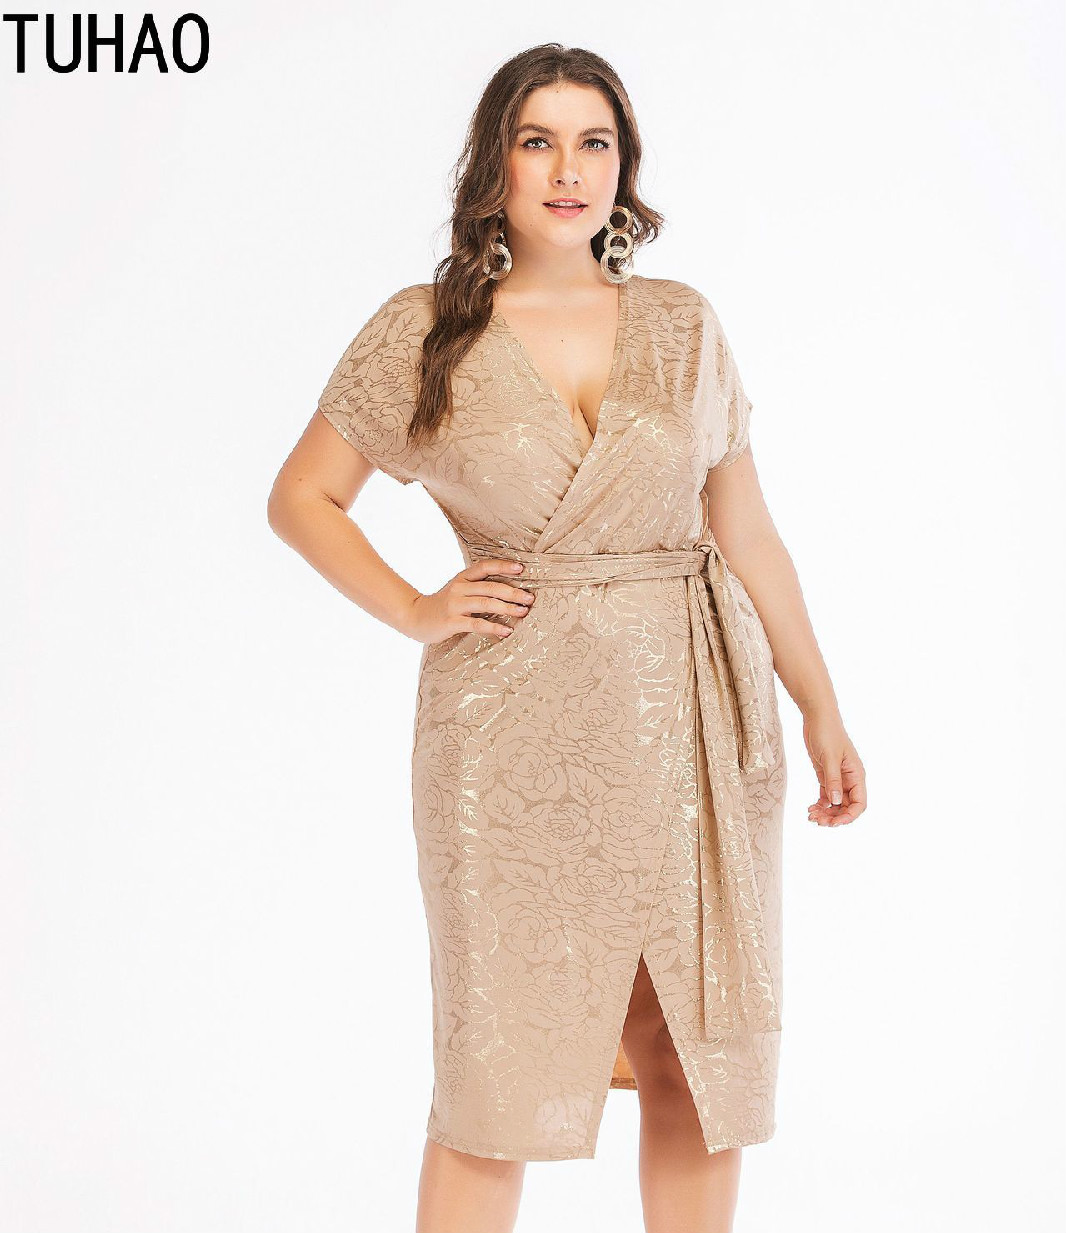 TUHAO Autumn Winter Middle Age Mother Vintage Party <font><b>Dresses</b></font> Plus Size <font><b>4XL</b></font> 3XL Elegant <font><b>Sexy</b></font> Split Femme <font><b>Dress</b></font> Runway <font><b>Club</b></font> <font><b>Dress</b></font> image